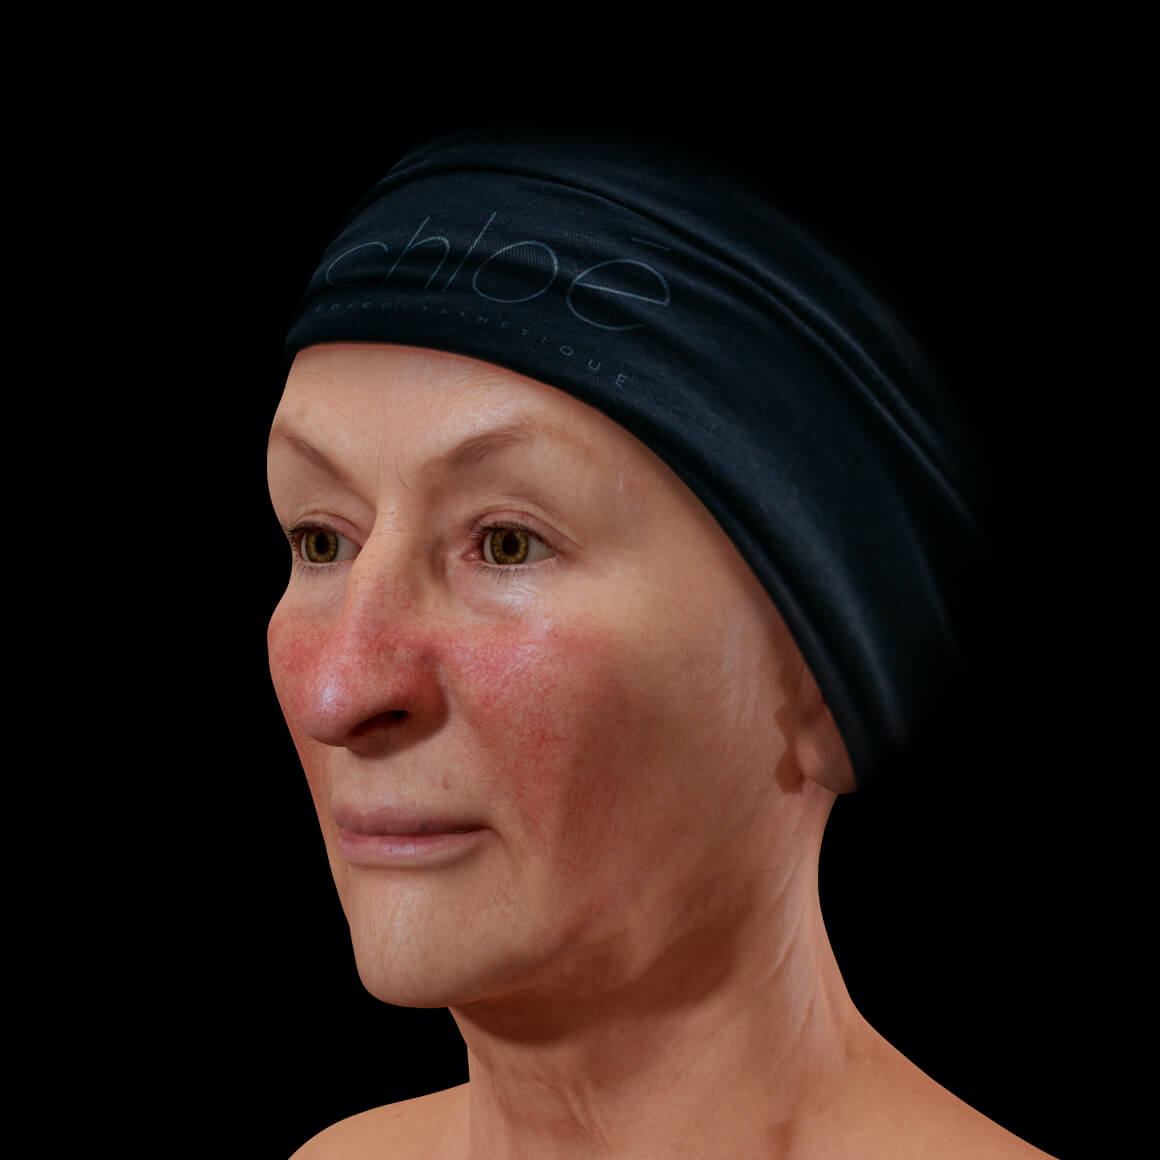 A female Clinique Chloé patient positioned at an angle showing rosacea on her nose and cheeks